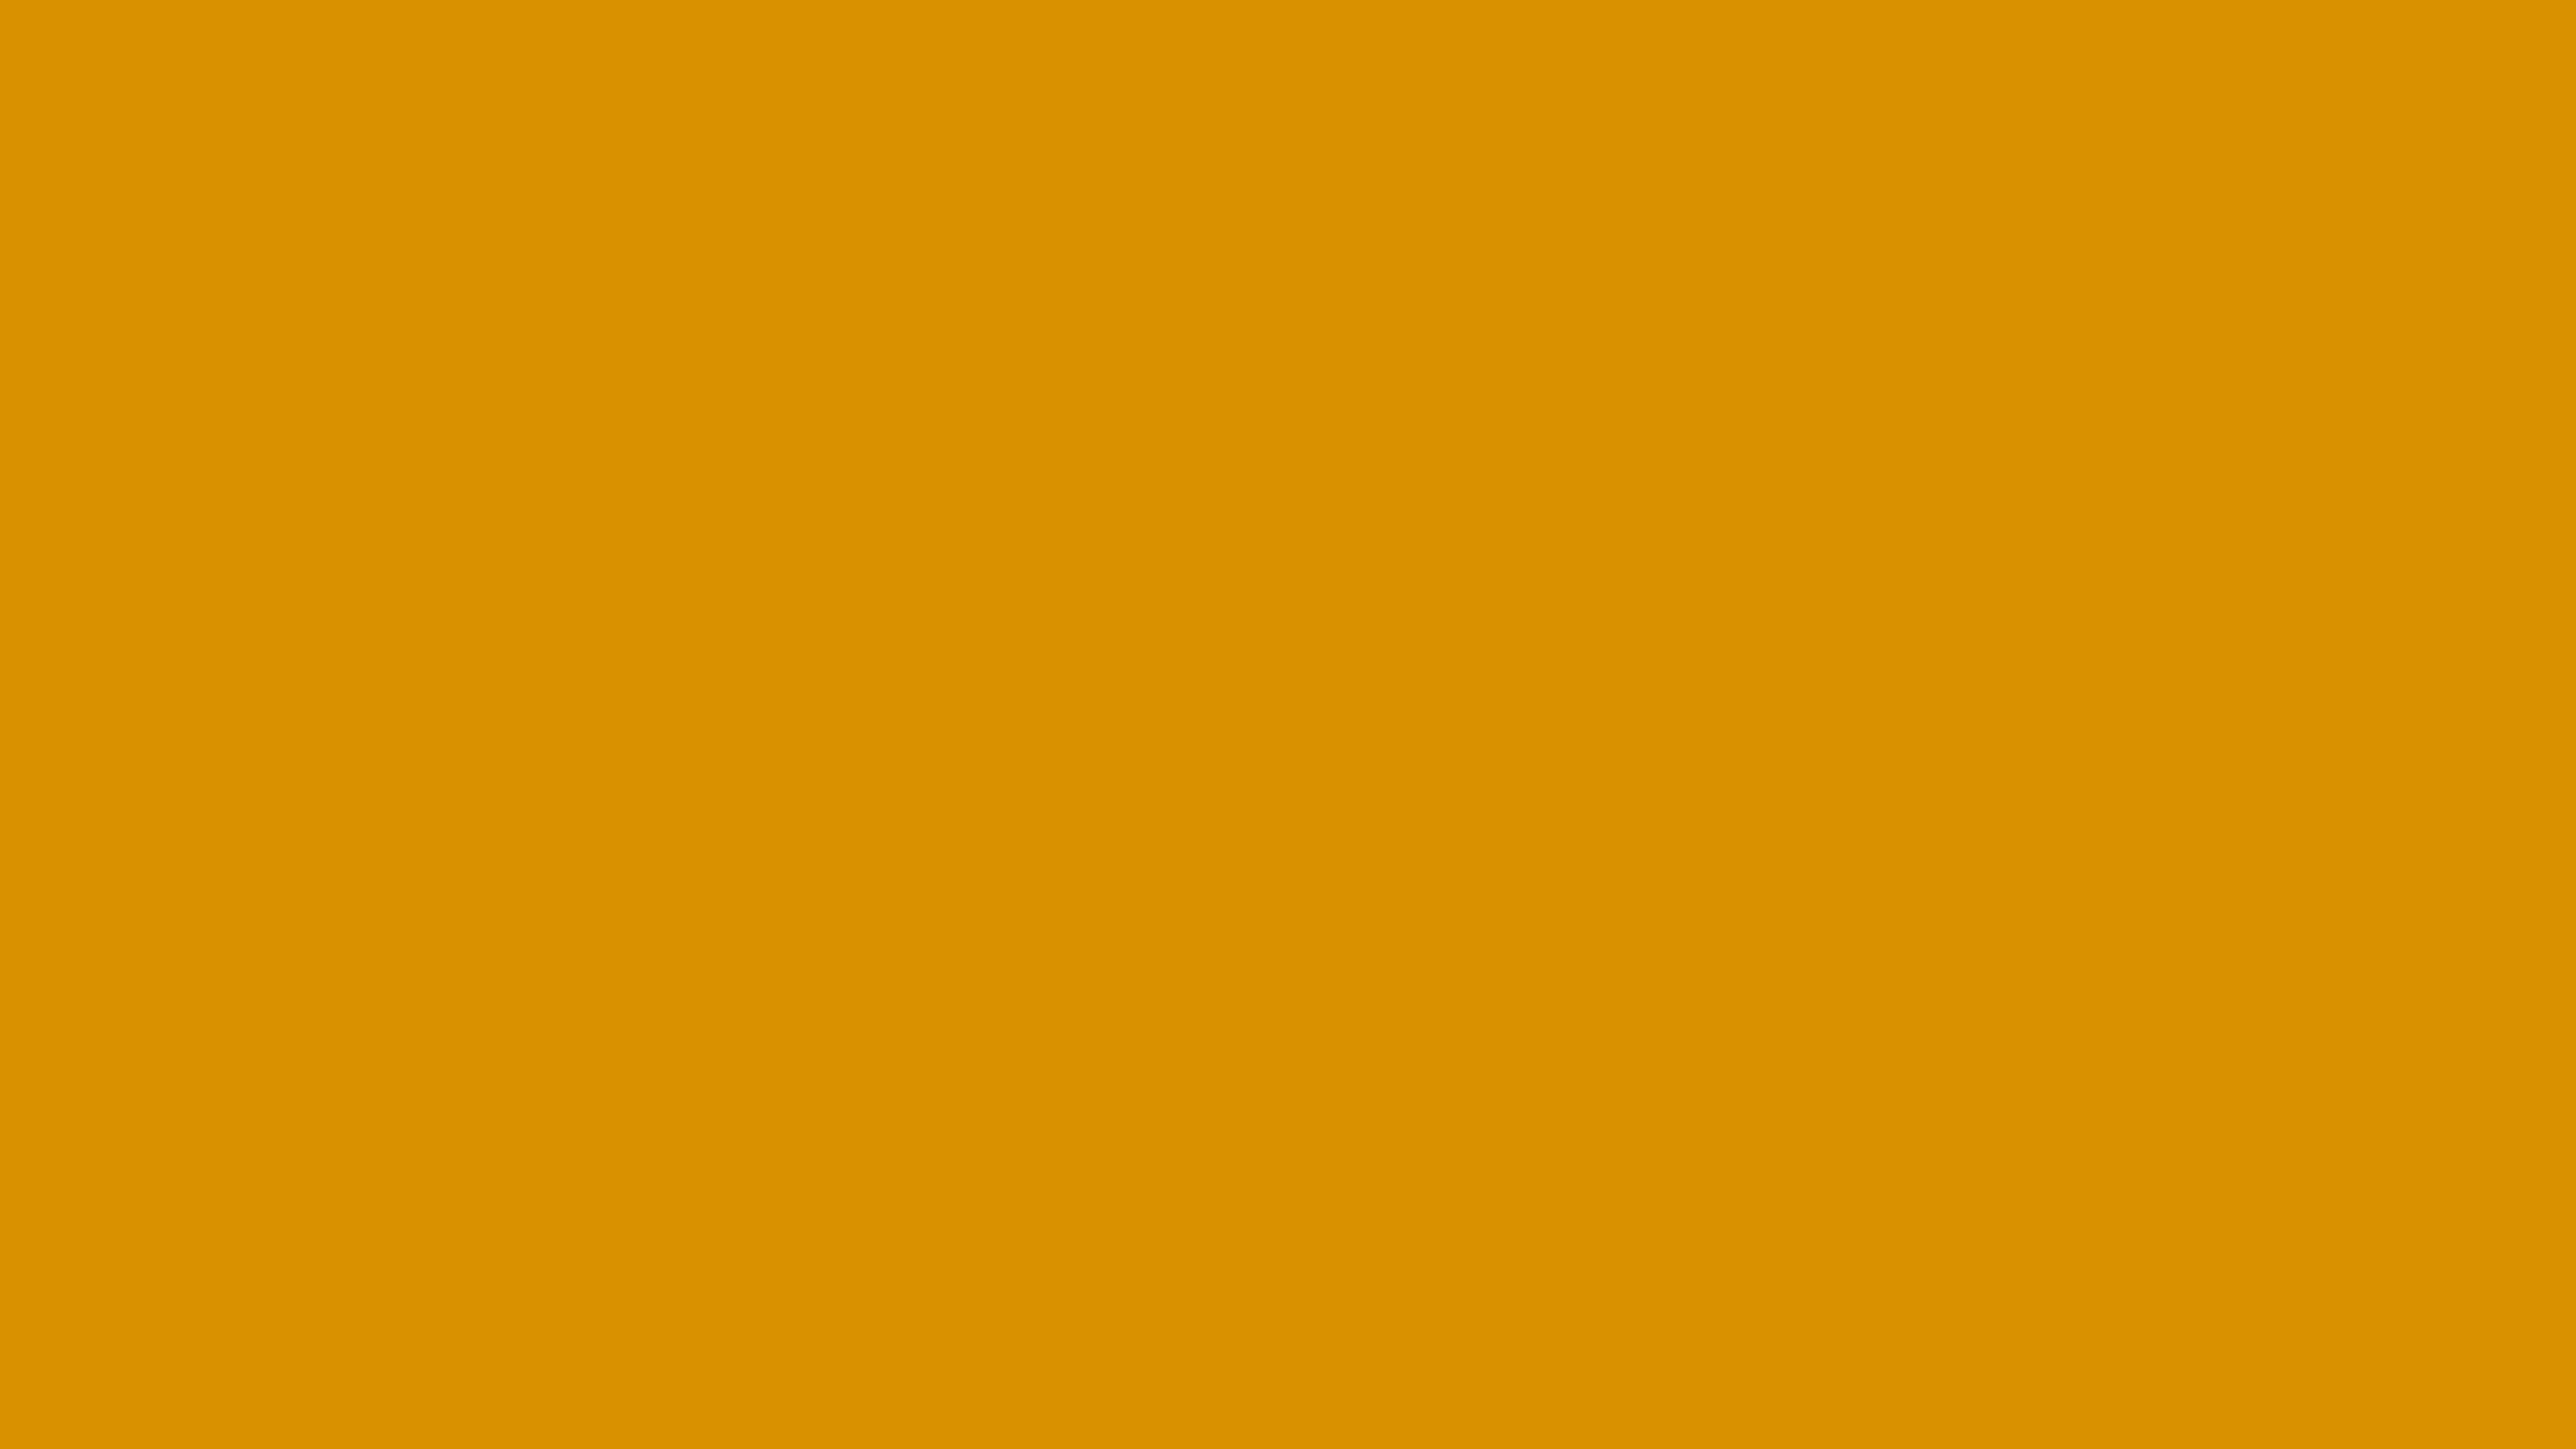 3840x2160 Harvest Gold Solid Color Background